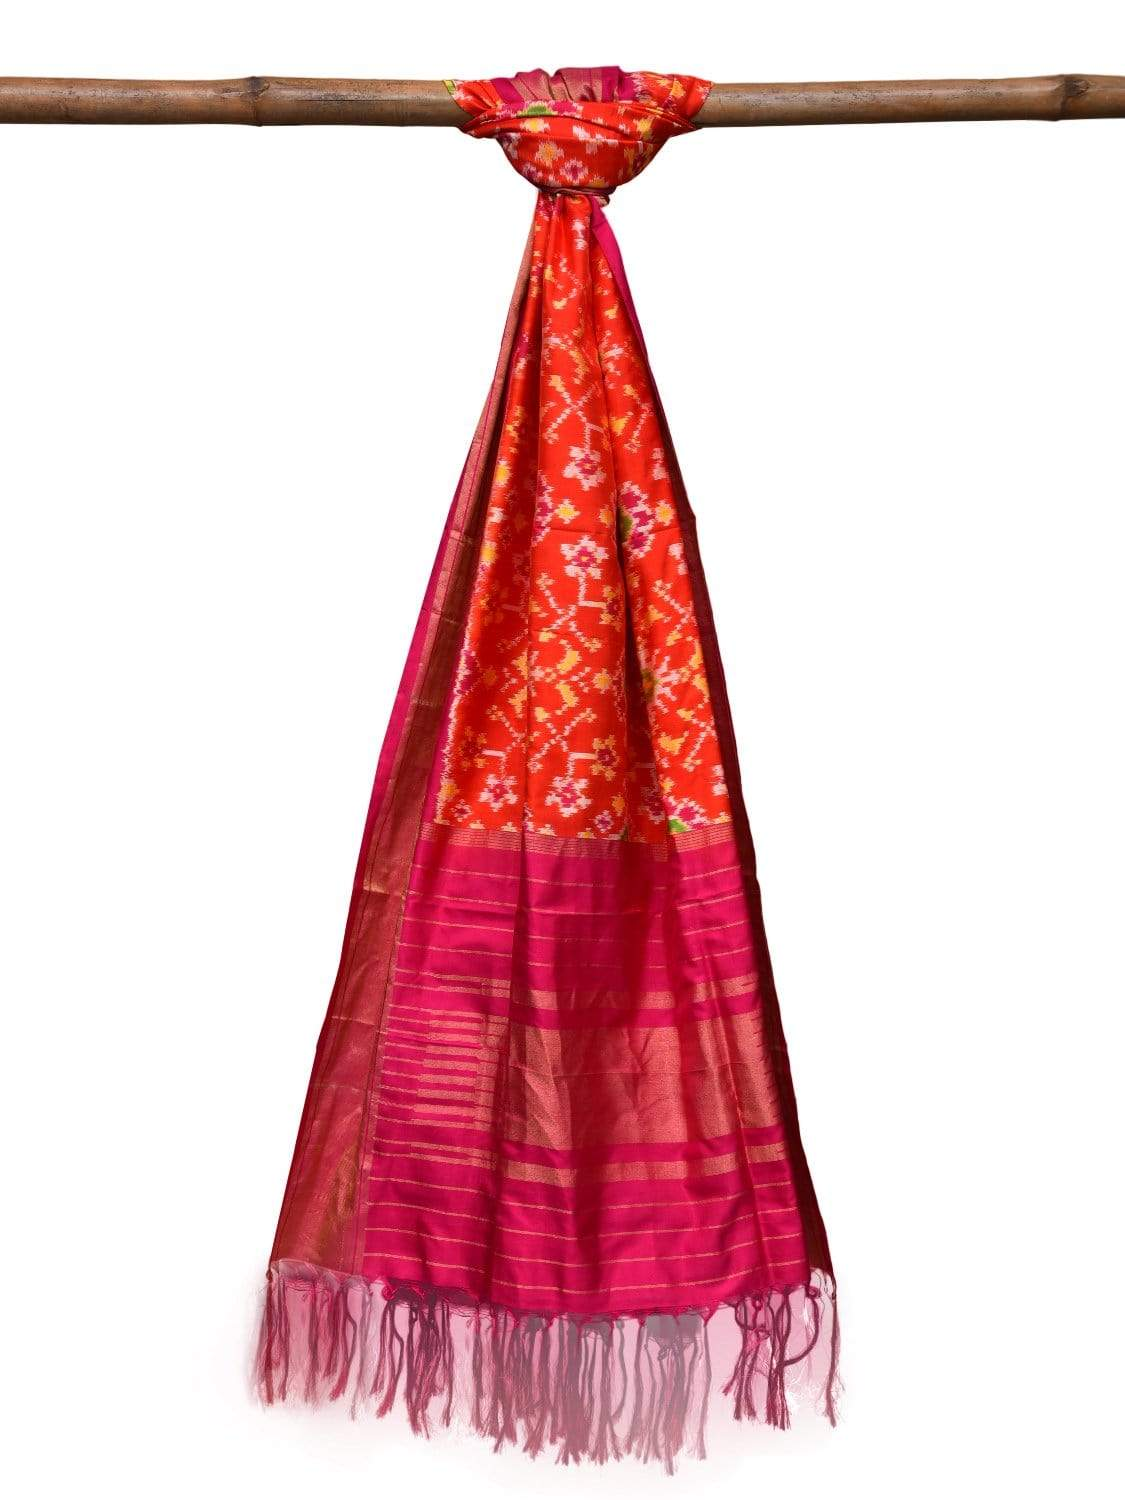 Teal and Pink Pochampally Ikat Silk Handloom Dupatta with All Over Design ds2037